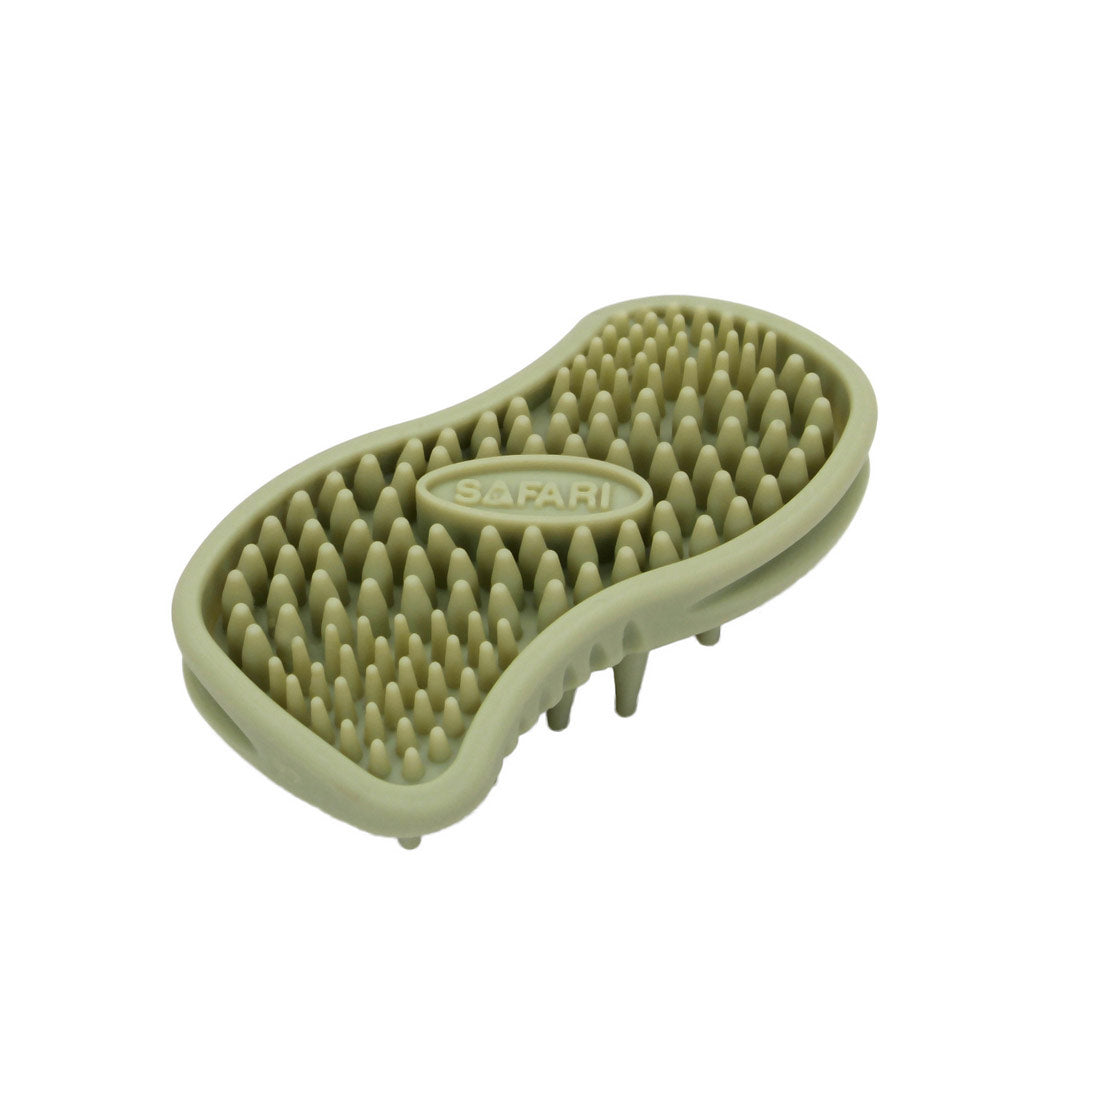 "Safari Cat Soft Tip Massager Brush Green 4.5"" x 2.5"" x 1.25"" Cat Grooming - London the Local"